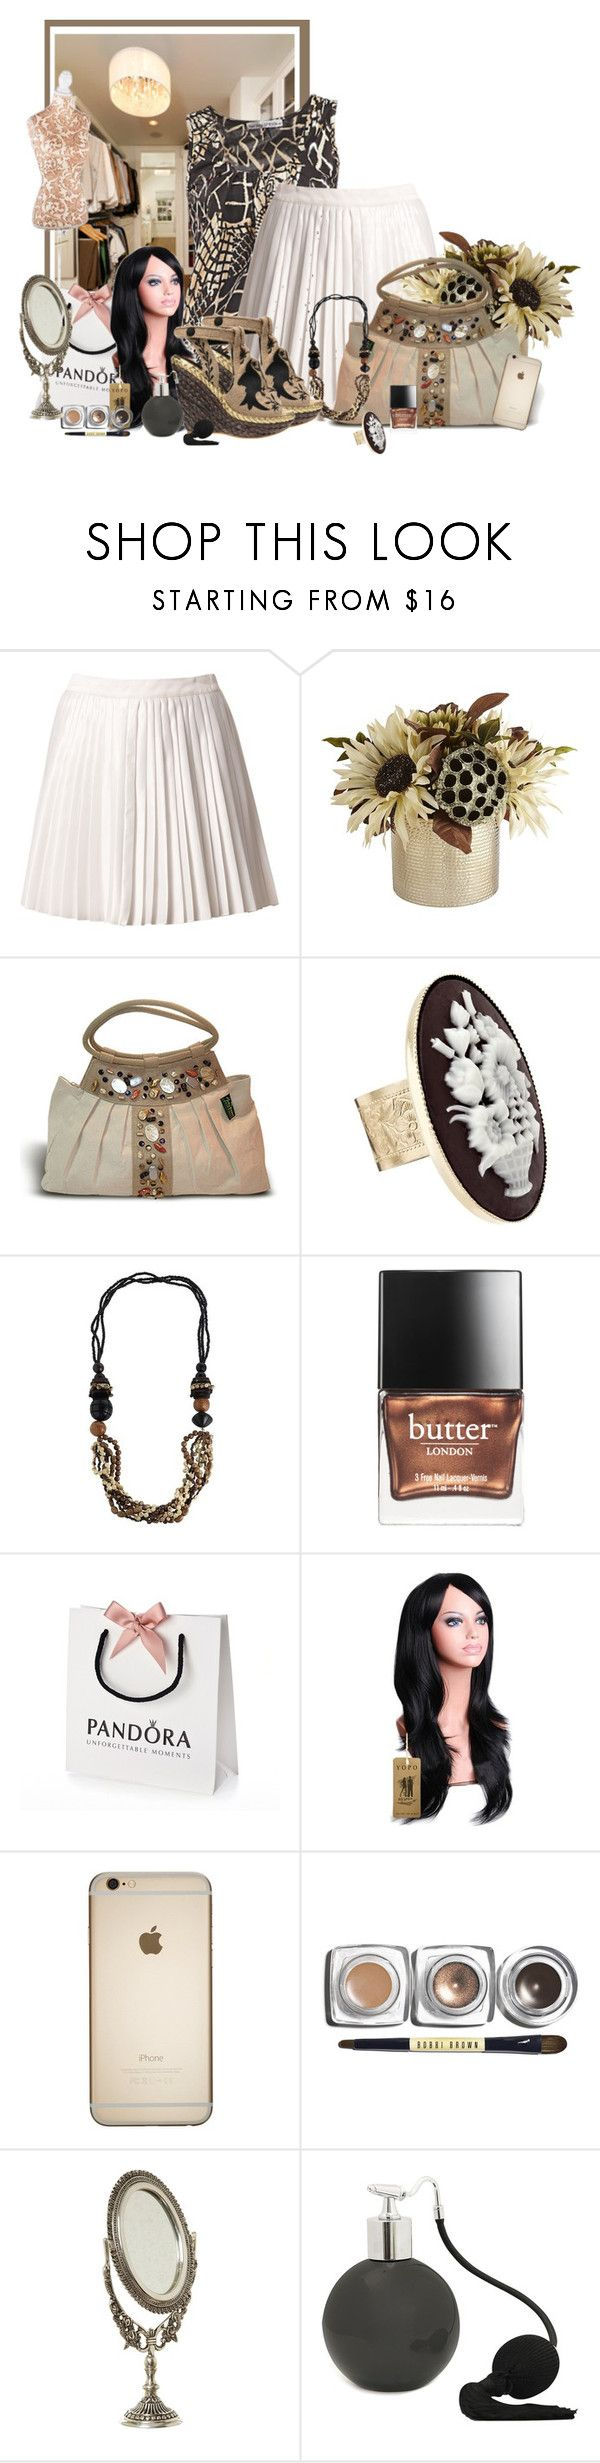 """conceptions de placard"" by frane-x ❤ liked on Polyvore featuring Estradeur, Pier 1 Imports, Irregular Choice, Butter London, Bobbi Brown Cosmetics and Shabby Chic"